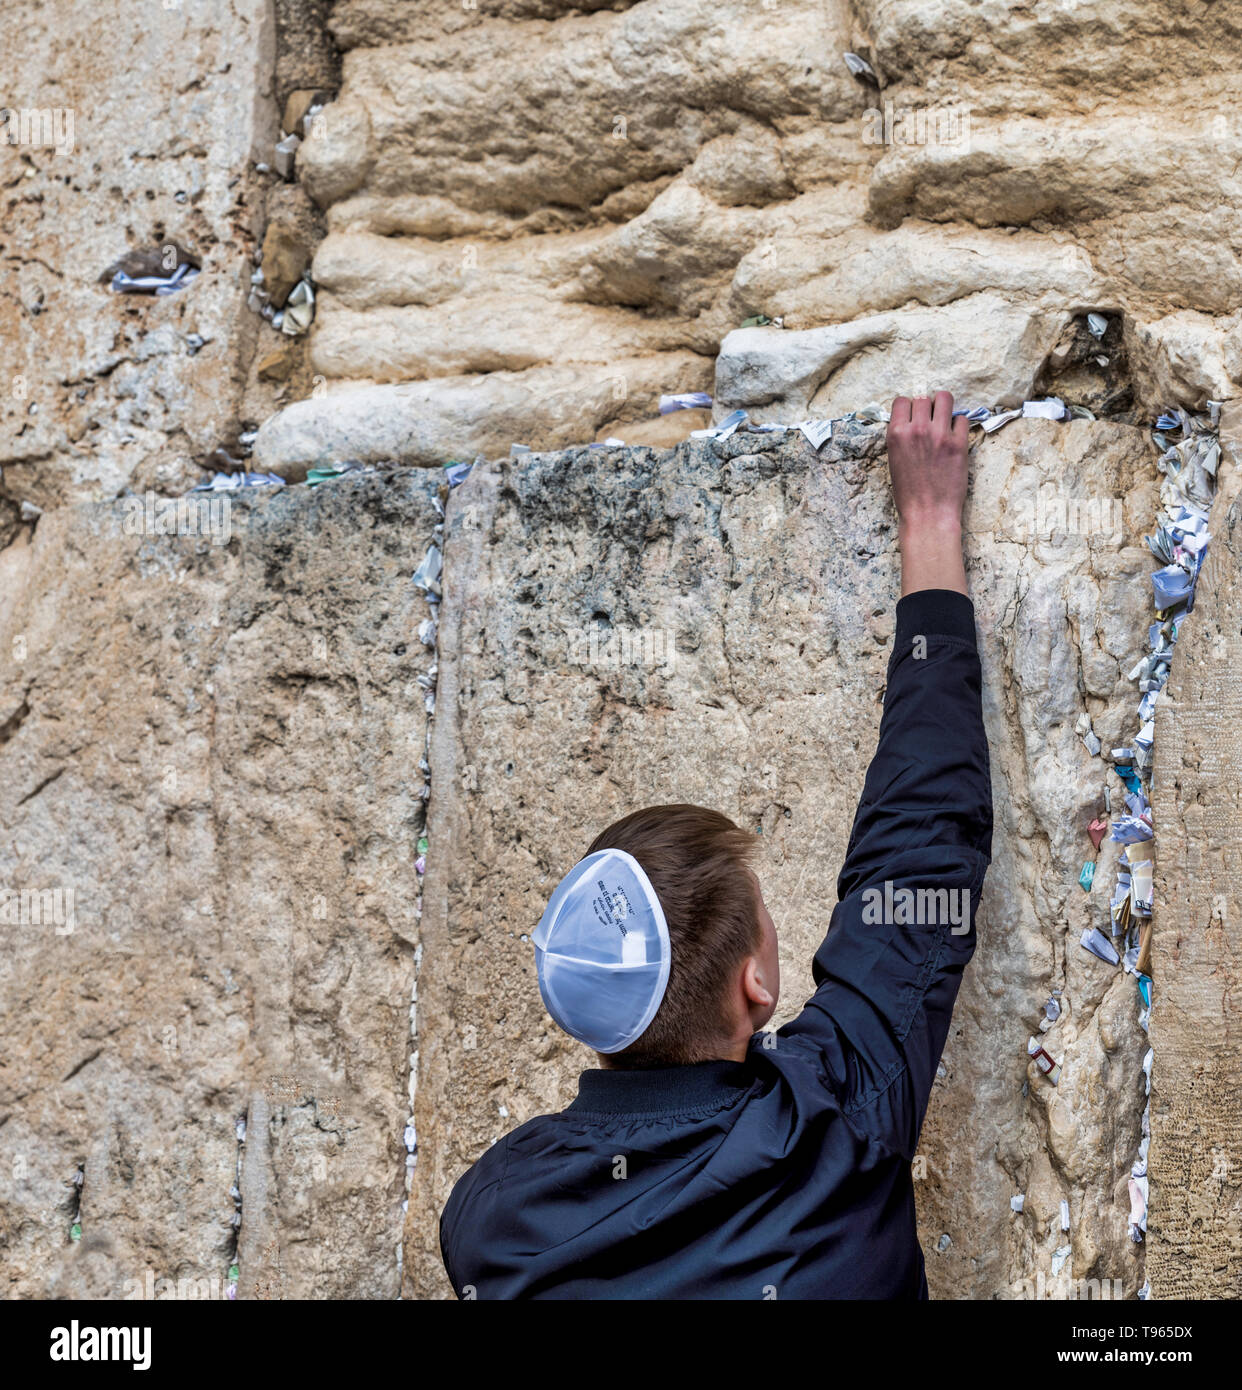 Jerusalem,israel,27-march-2019: Jewish man prays next to a crack filled with letters containing written prayers at the Western Wall in Jerusalem. Israel Stock Photo